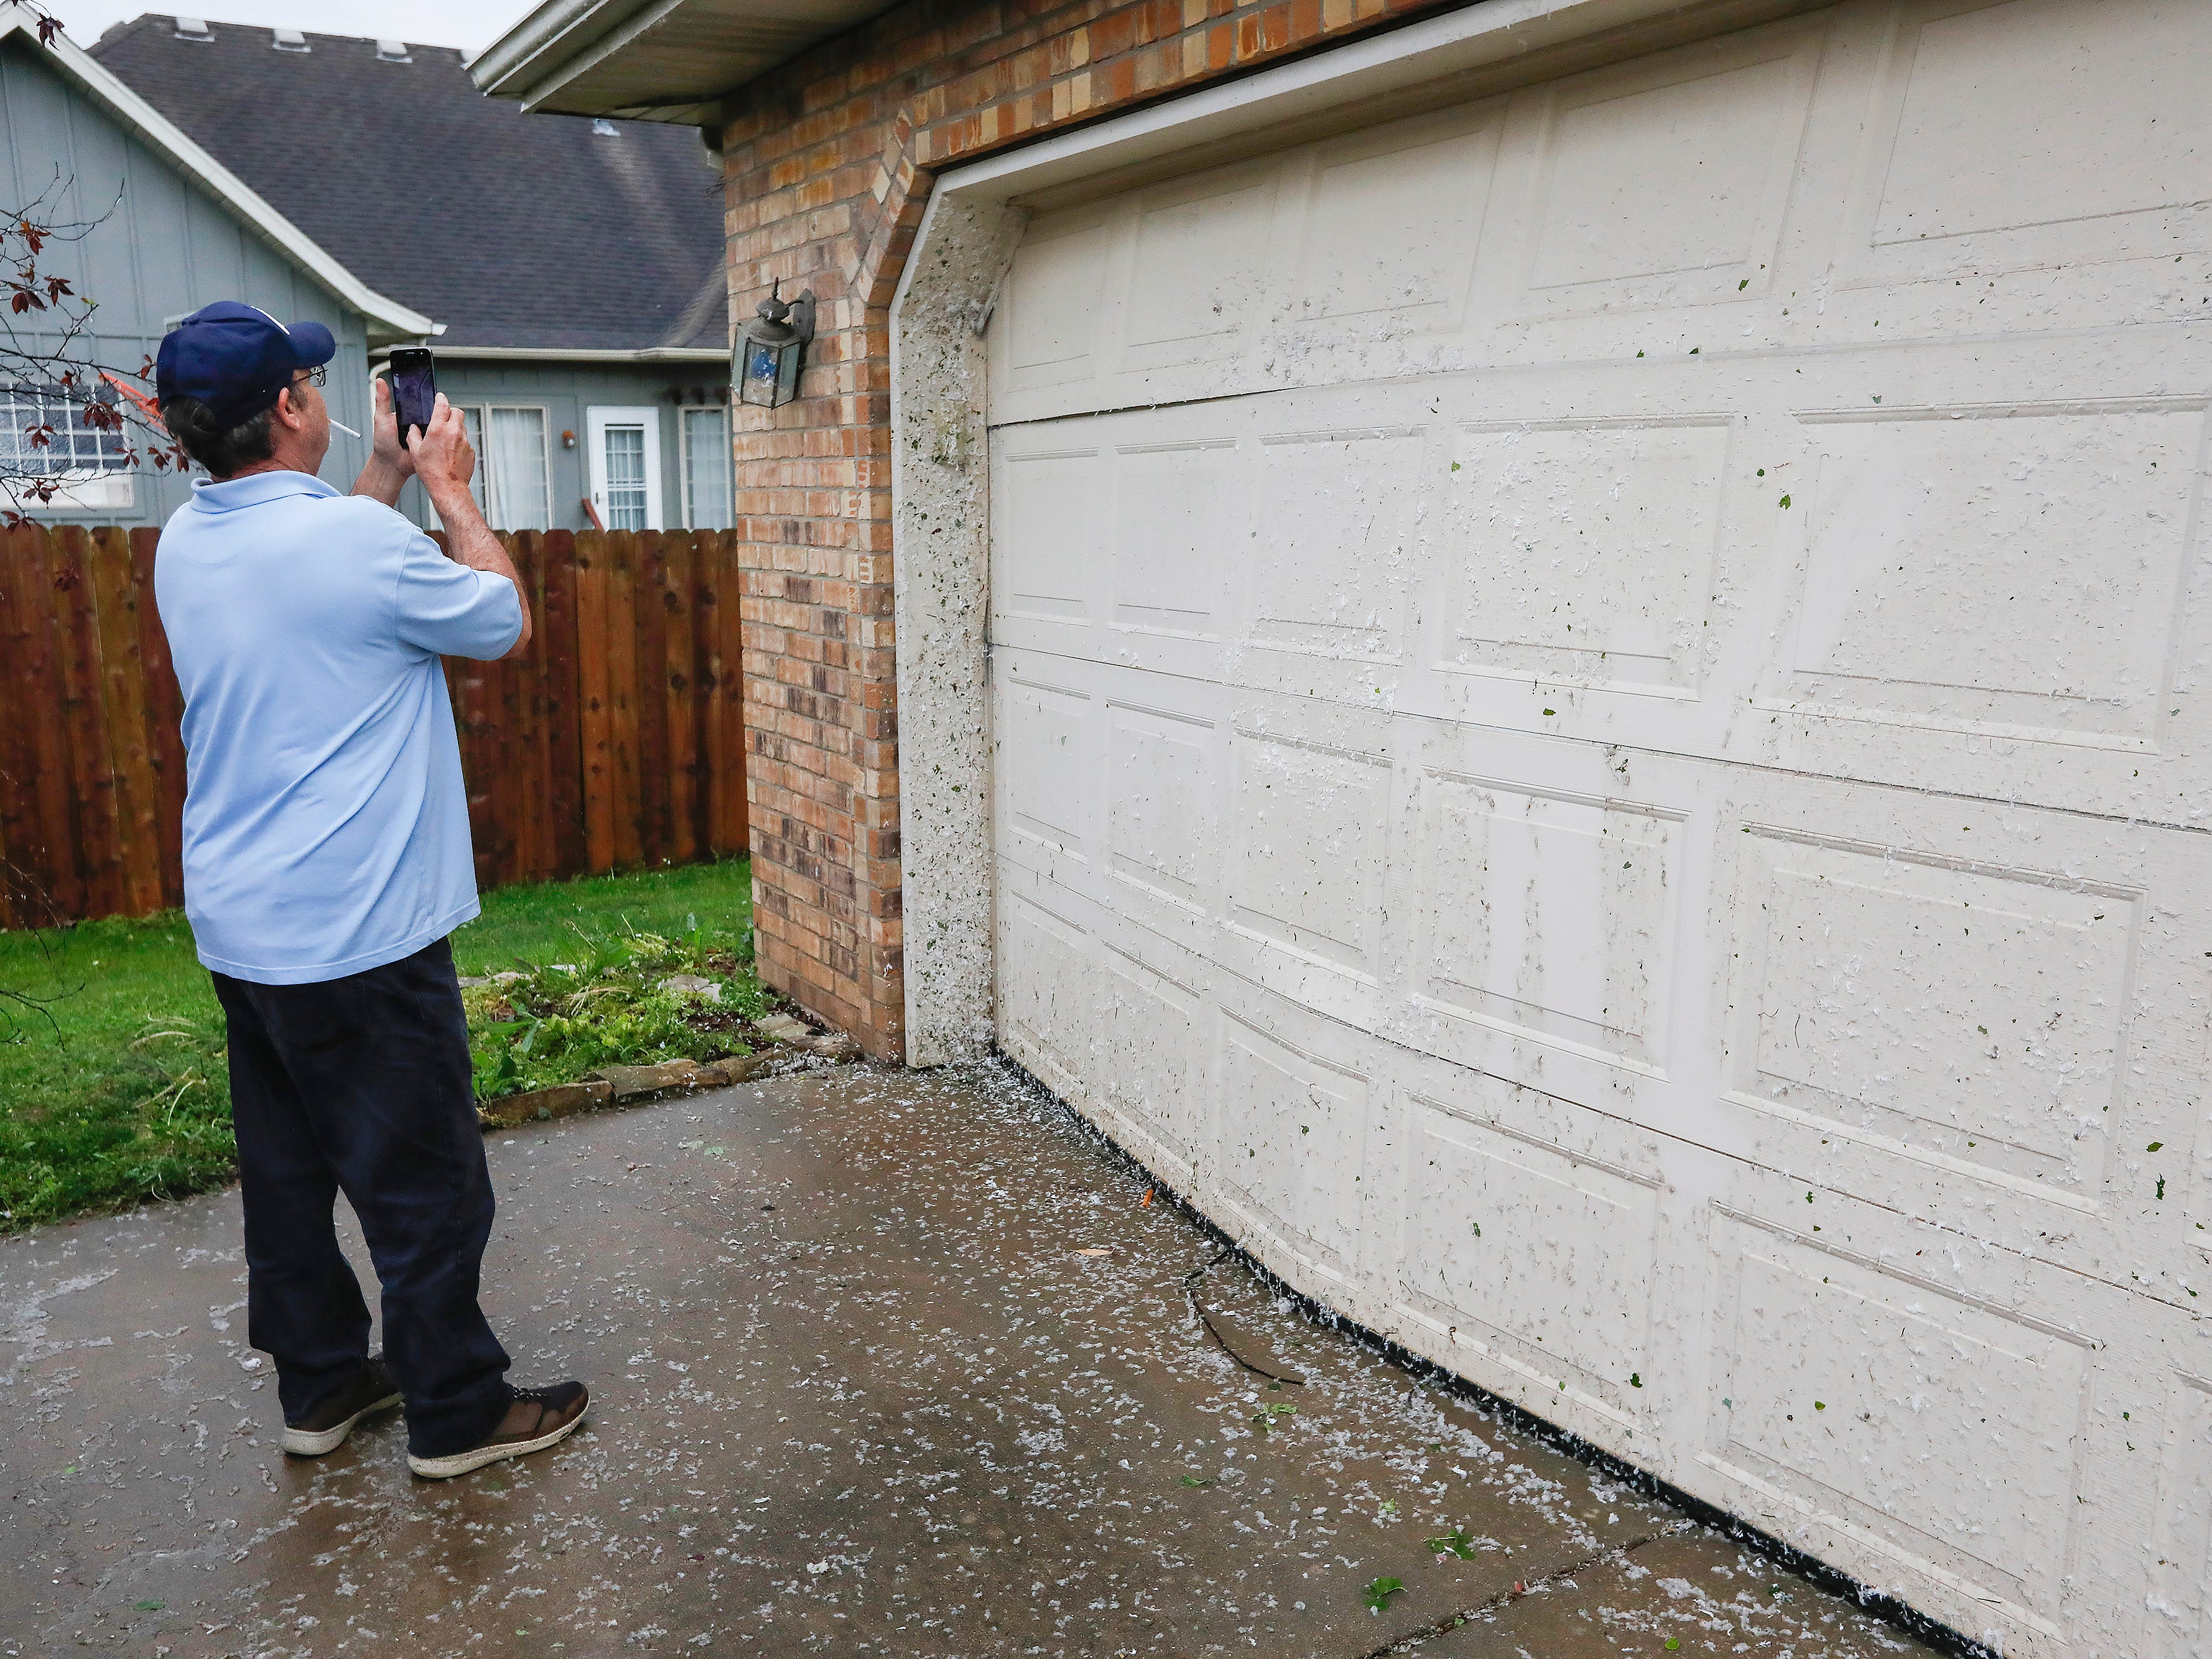 Steve Byard takes a photo of his garage Wednesday in the Waterford neighborhood that was damaged by a likely tornado that hit Ozark on Tuesday, April 30, 2019.